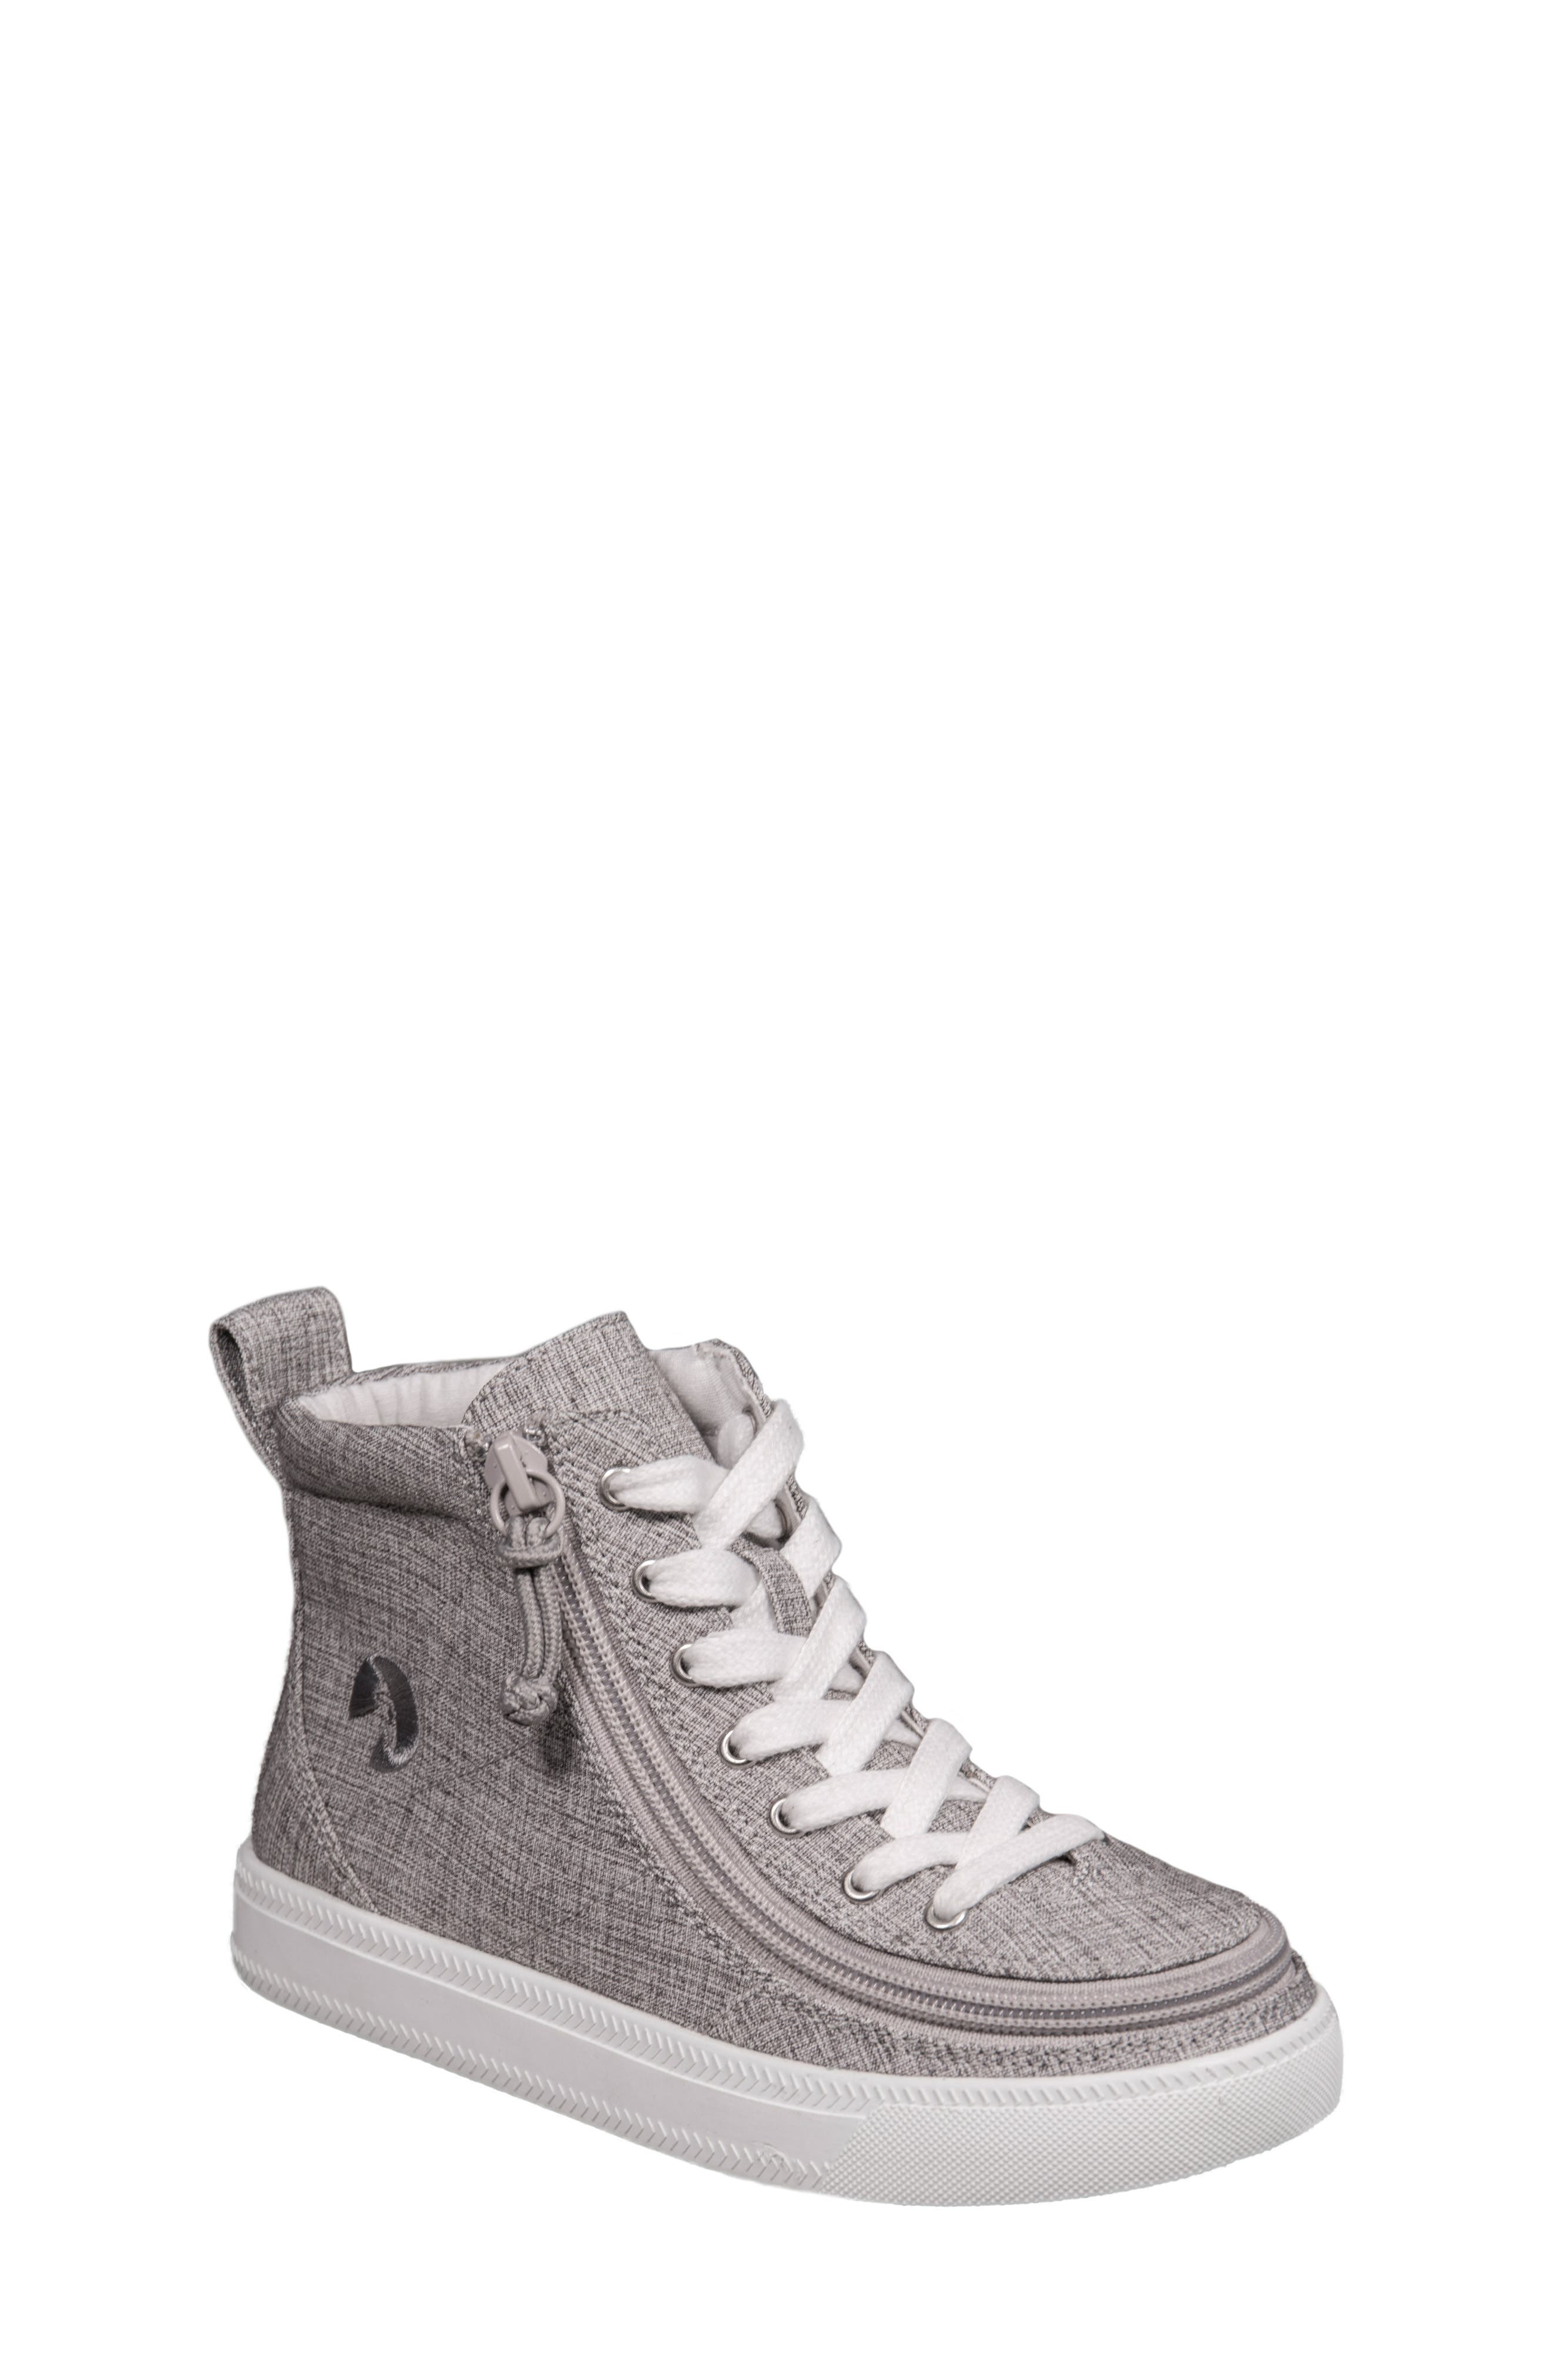 Zip Around High Top Sneaker,                         Main,                         color, Grey Jersey